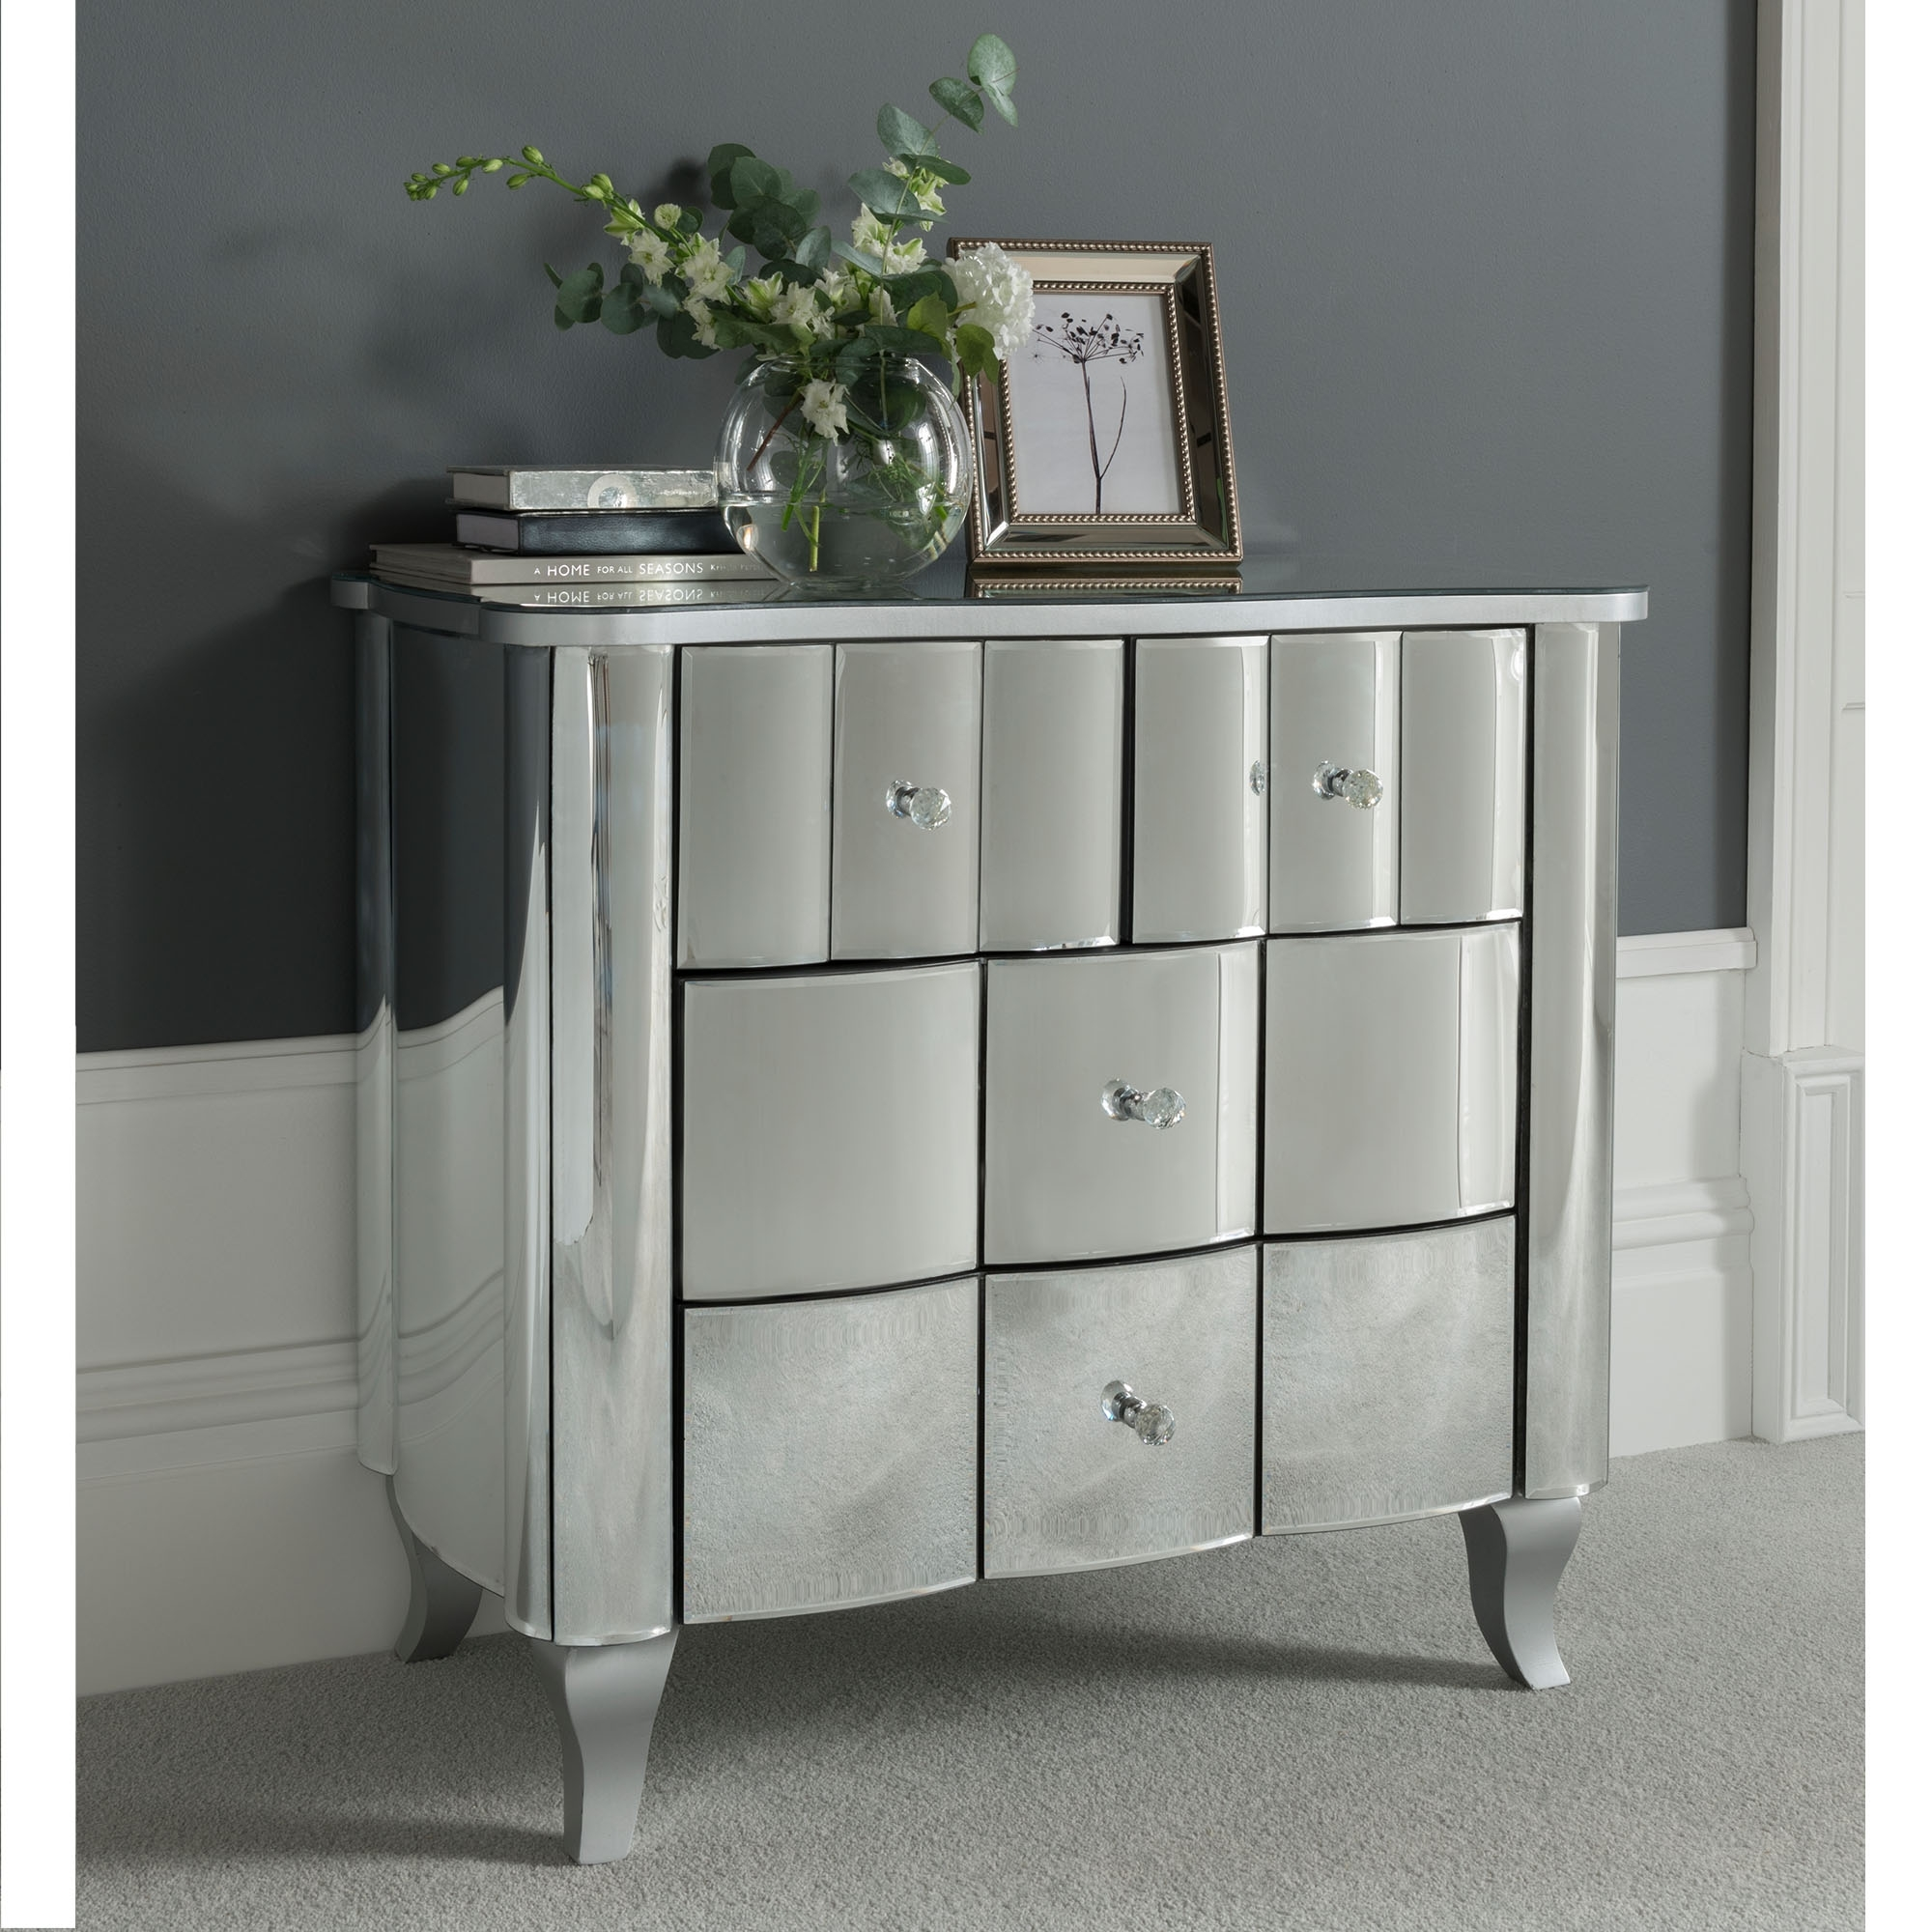 rome mirrored chest of drawers venetian mirrored furniture. Black Bedroom Furniture Sets. Home Design Ideas